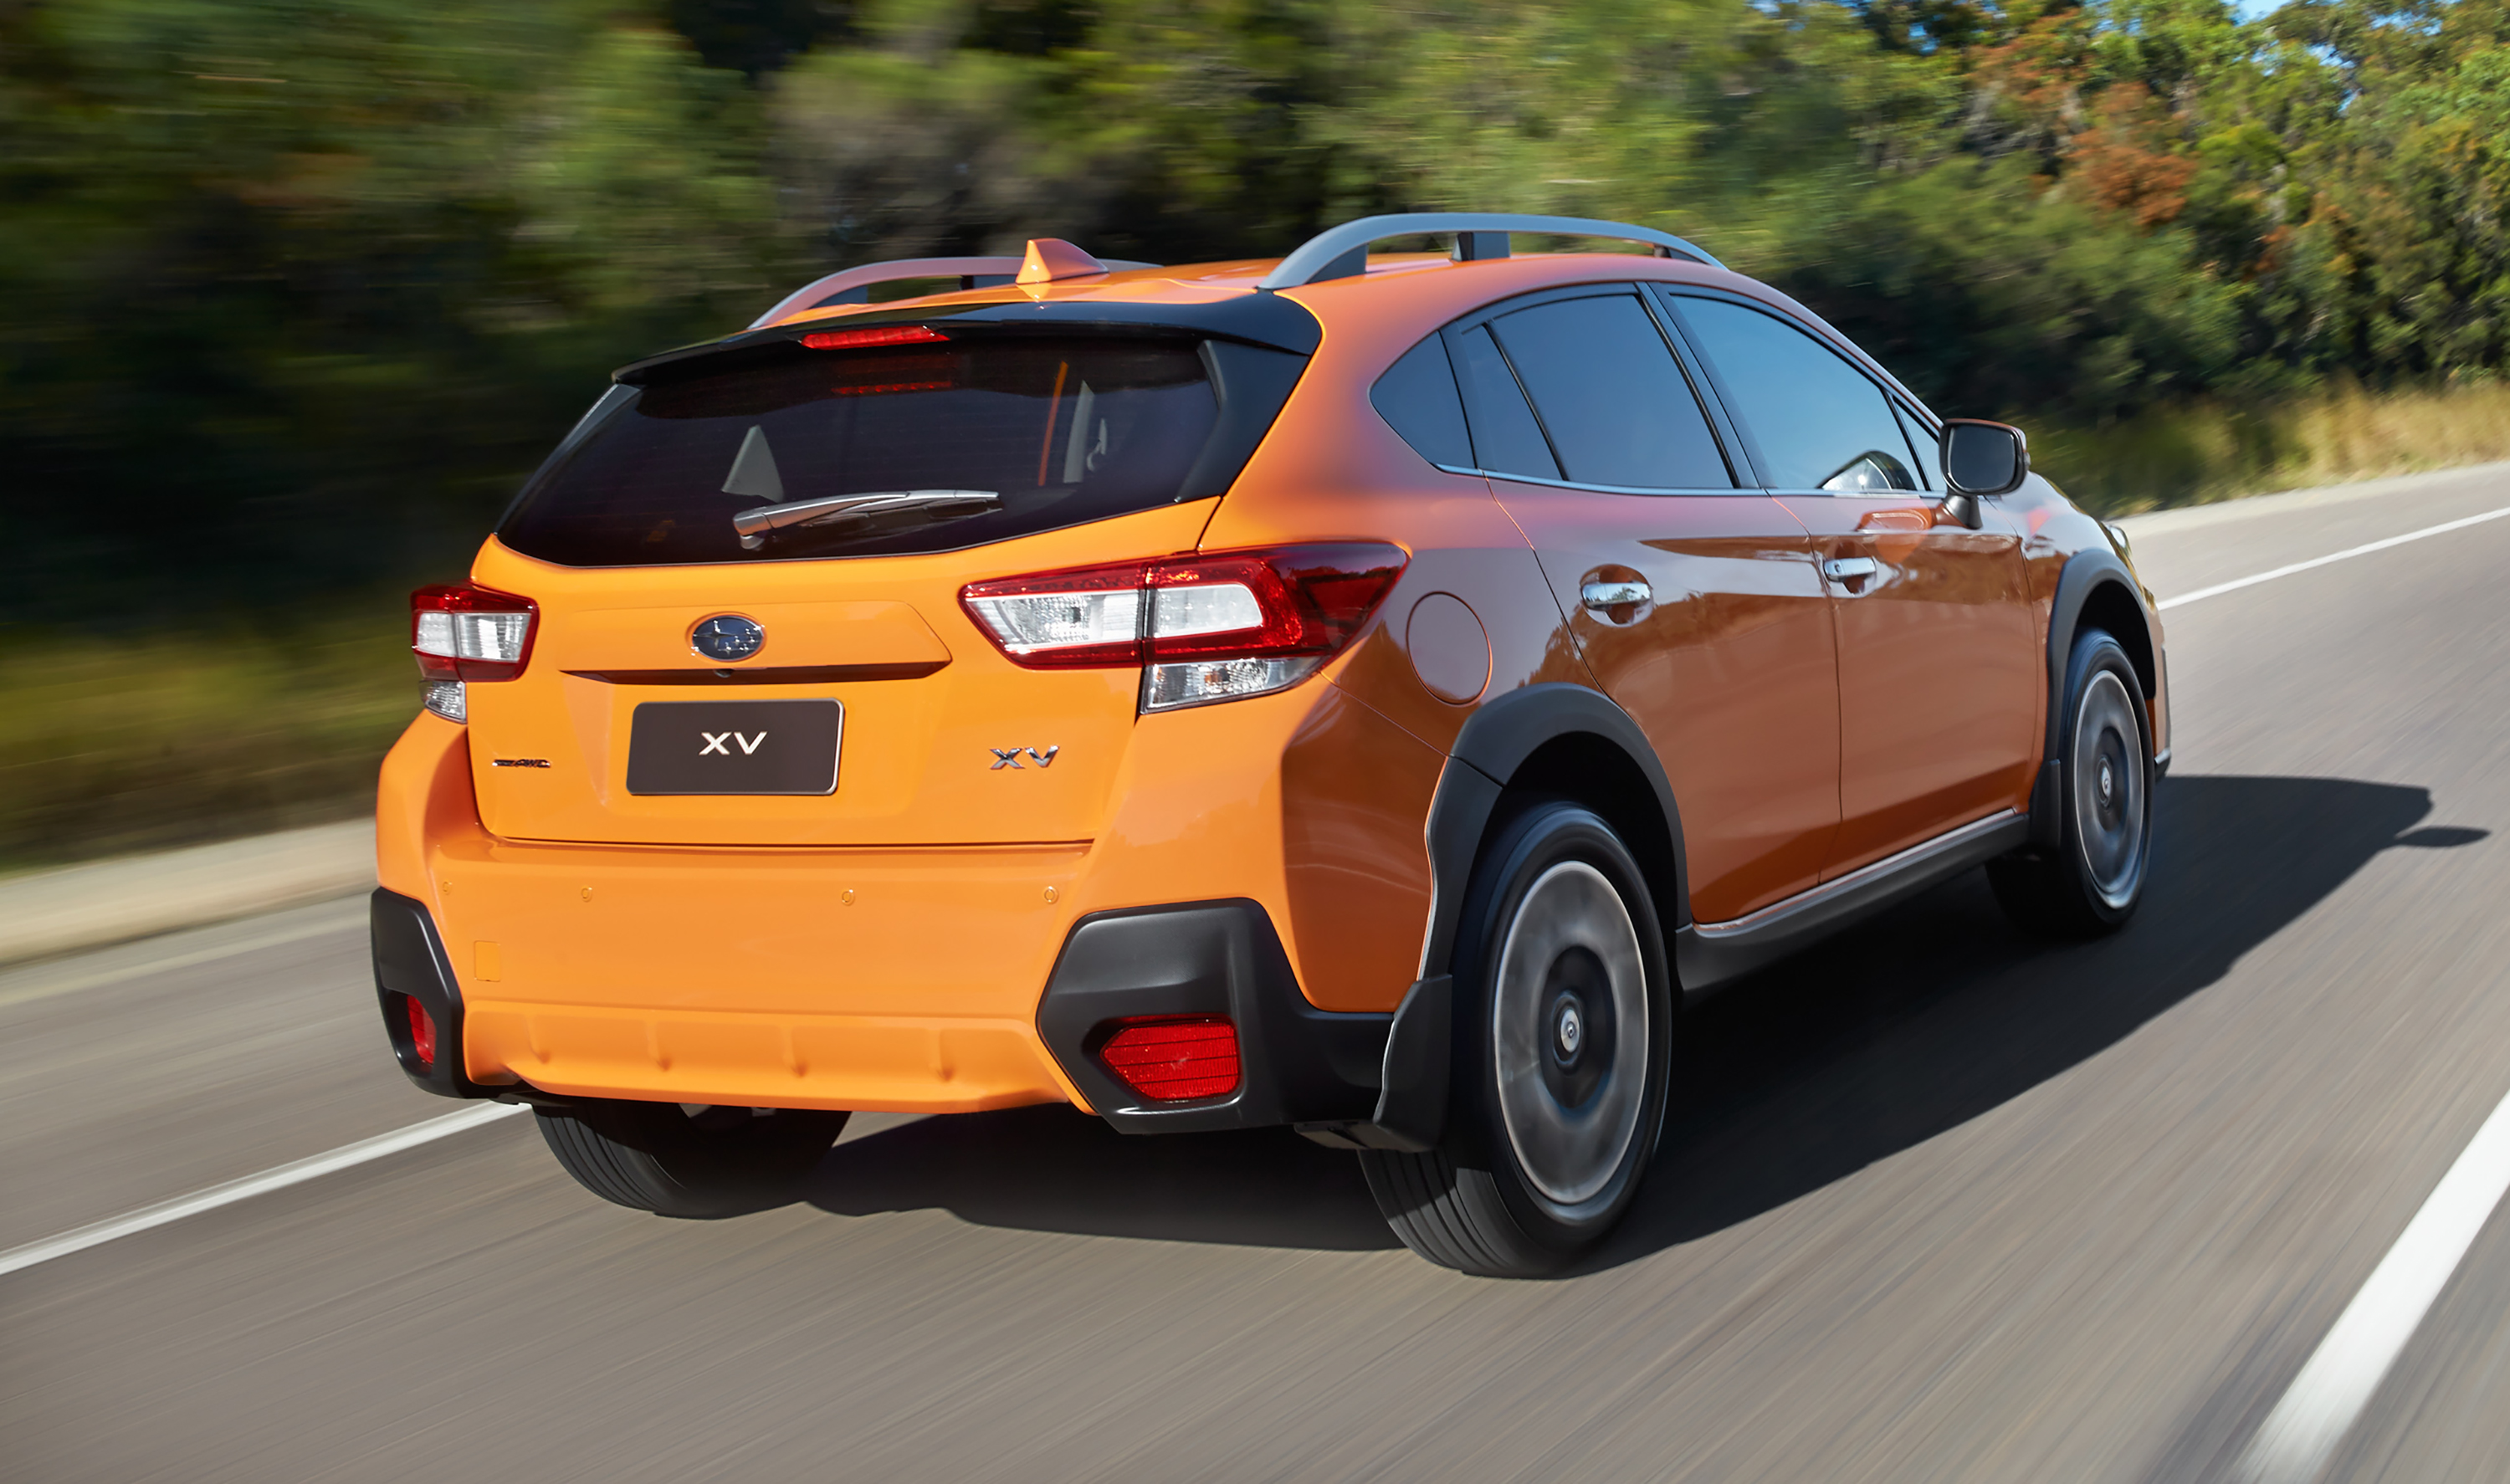 2017 Subaru XV review | CarAdvice